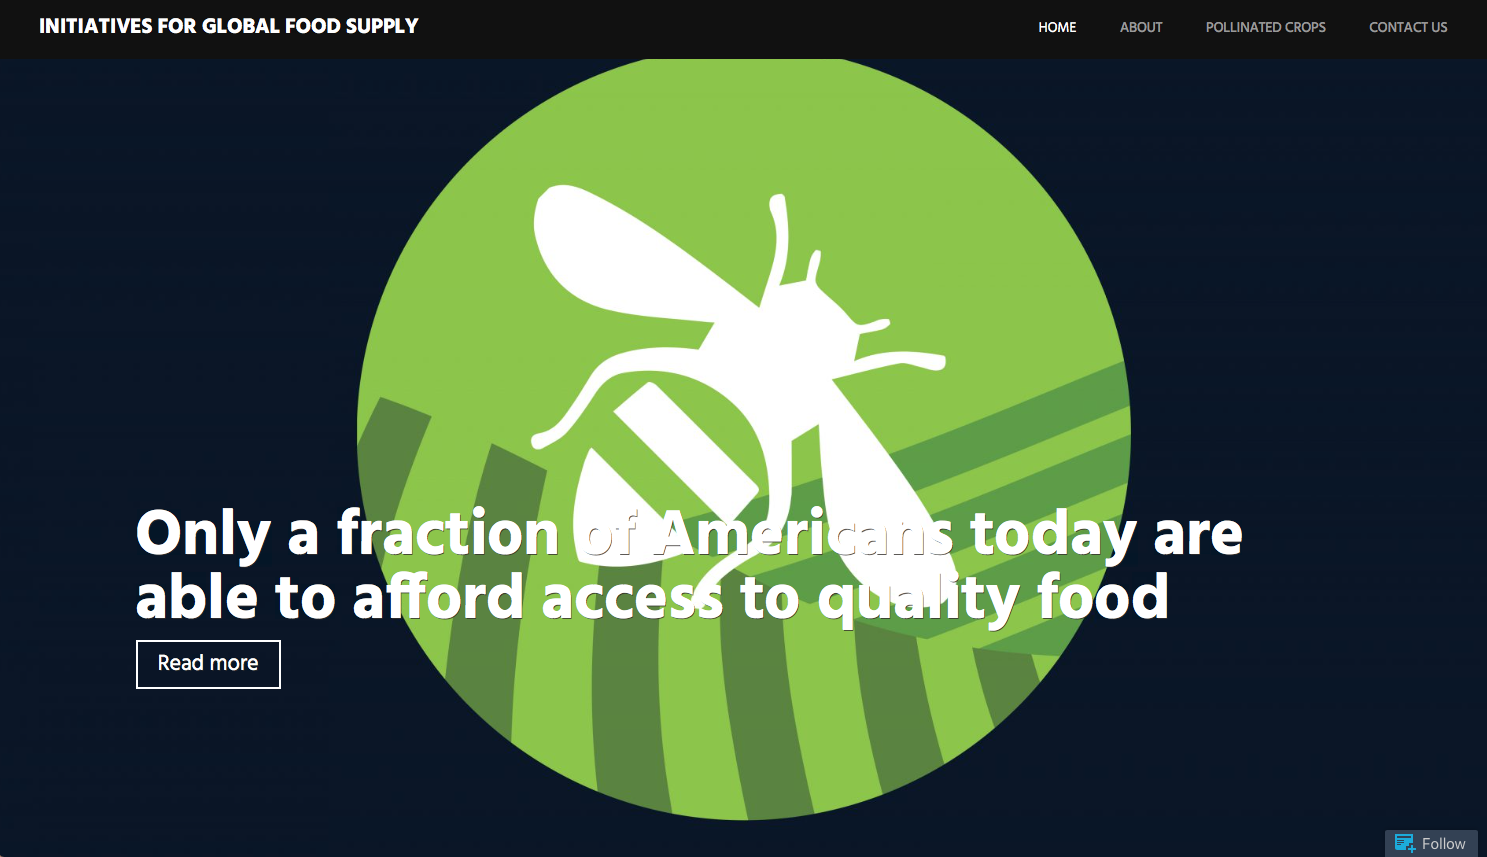 initiatives for global food supply website